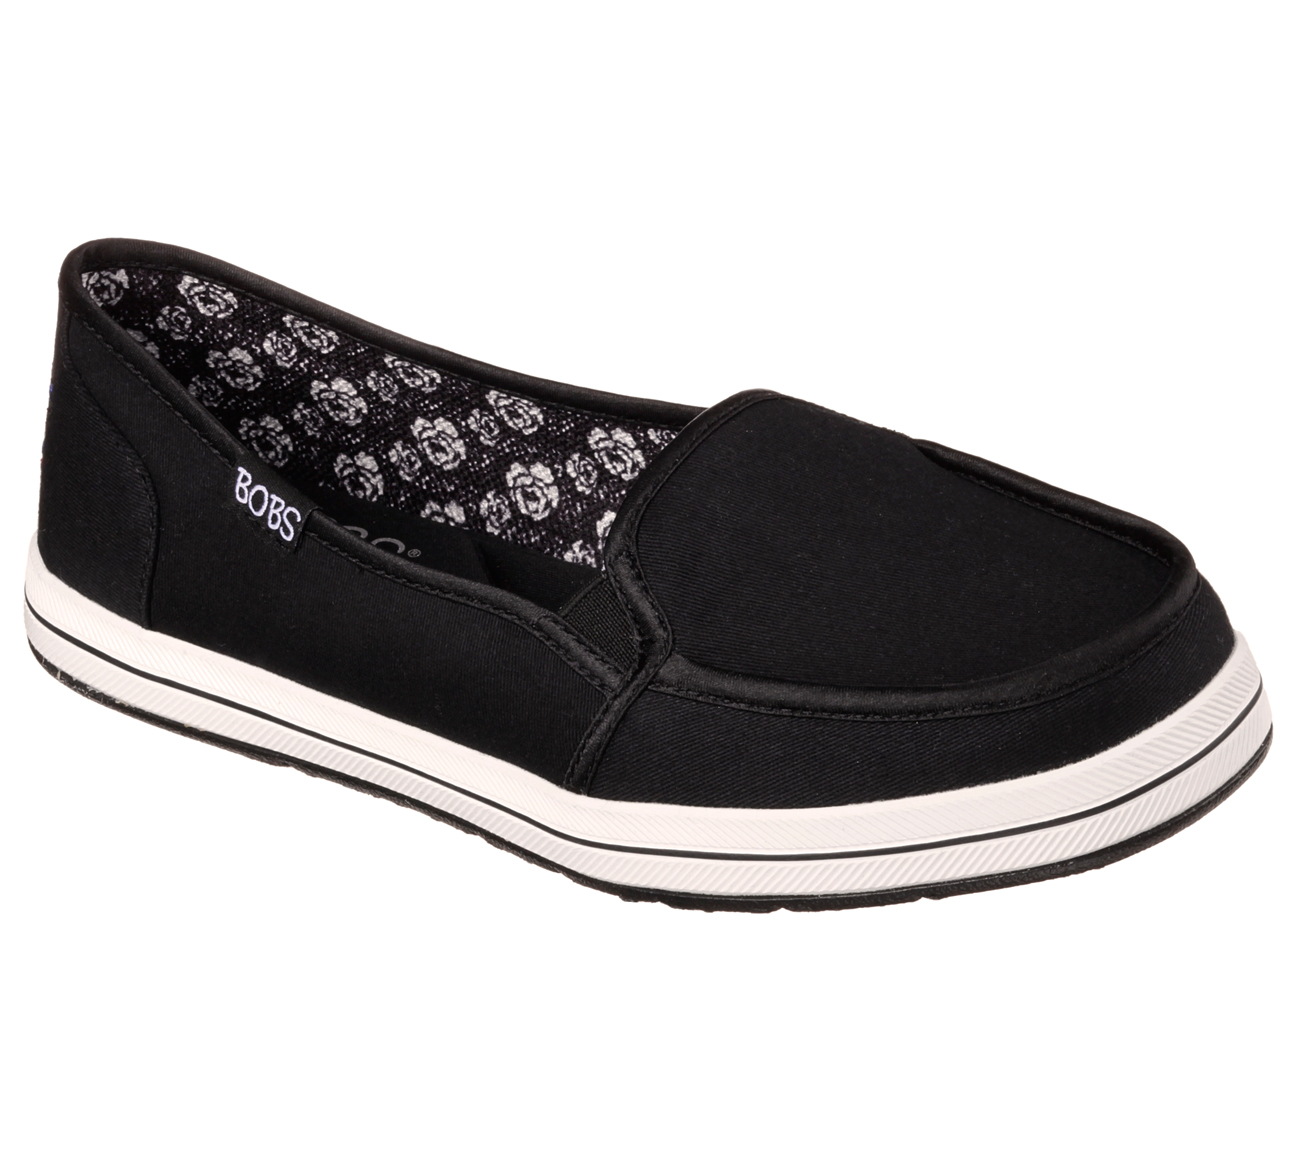 Skechers Bob Slip On Shoes Girls